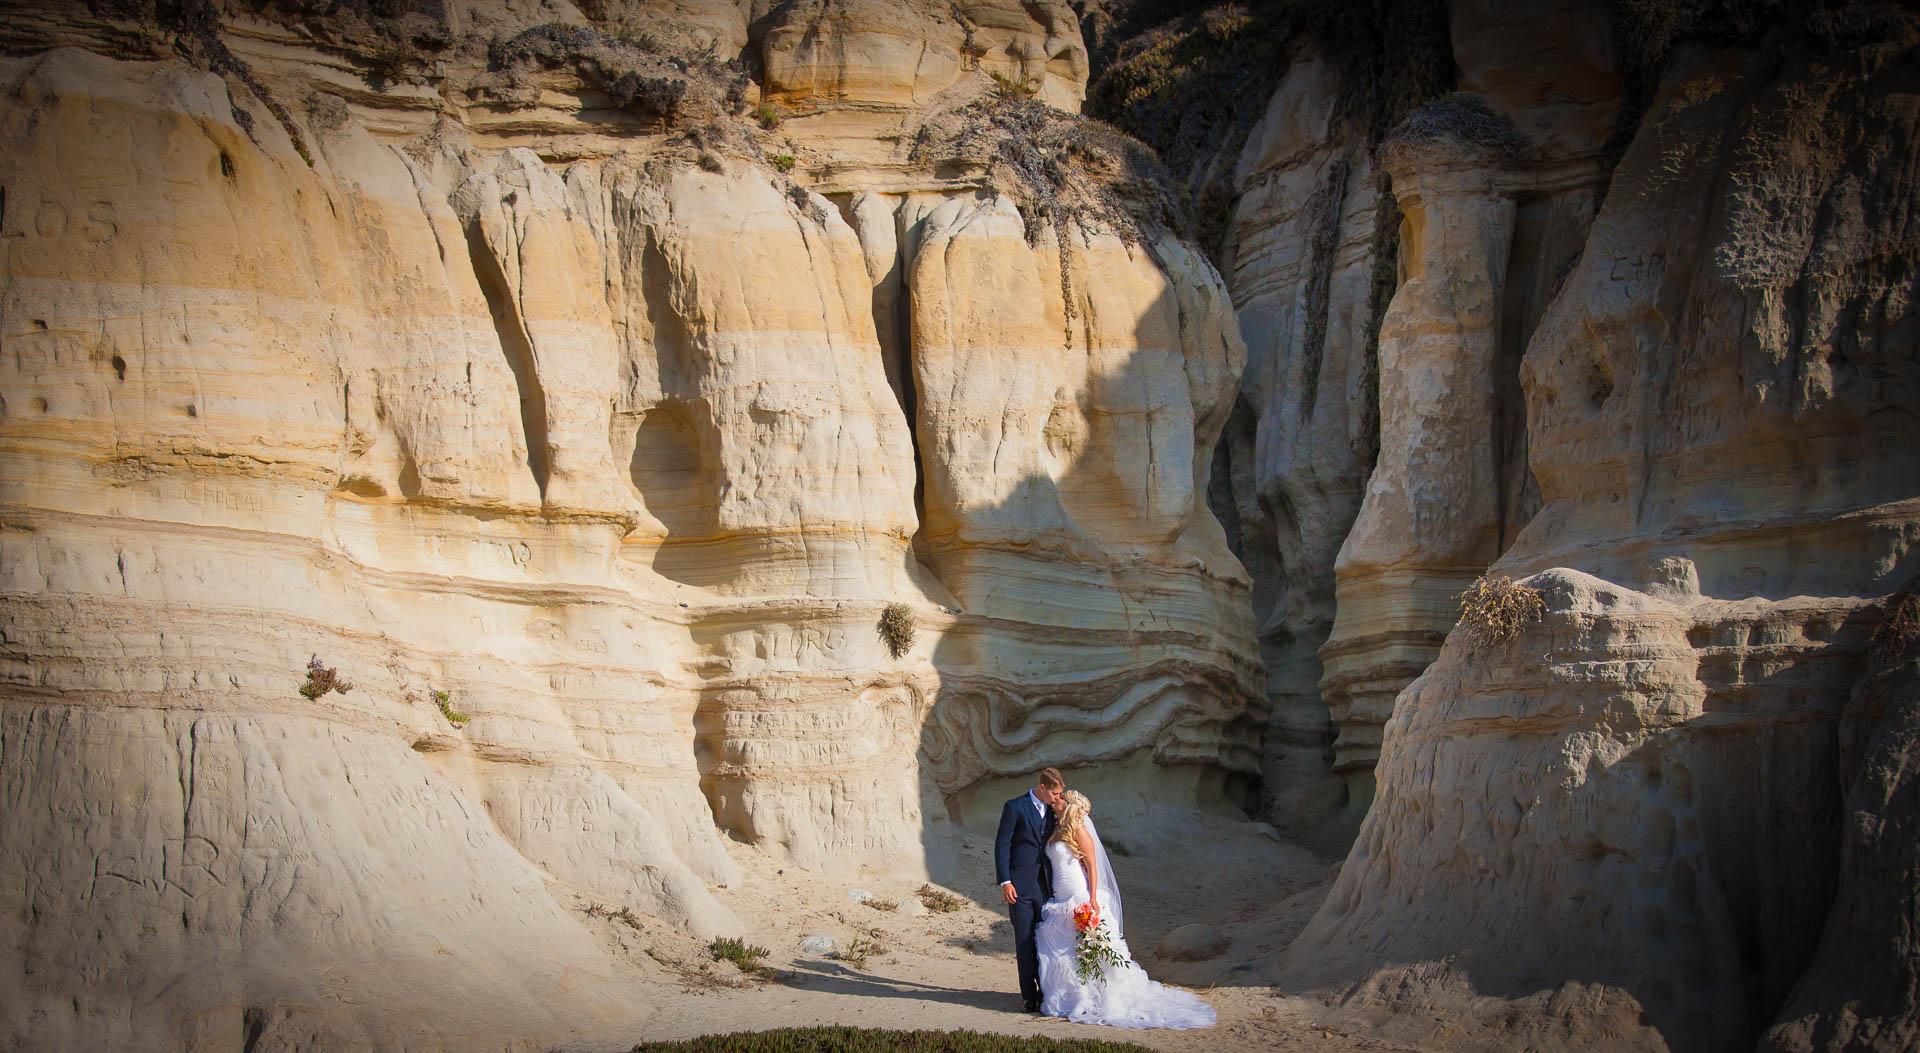 Danielle and John at the Califia State Park for wedding bridals Image by Rick Thompson Photography